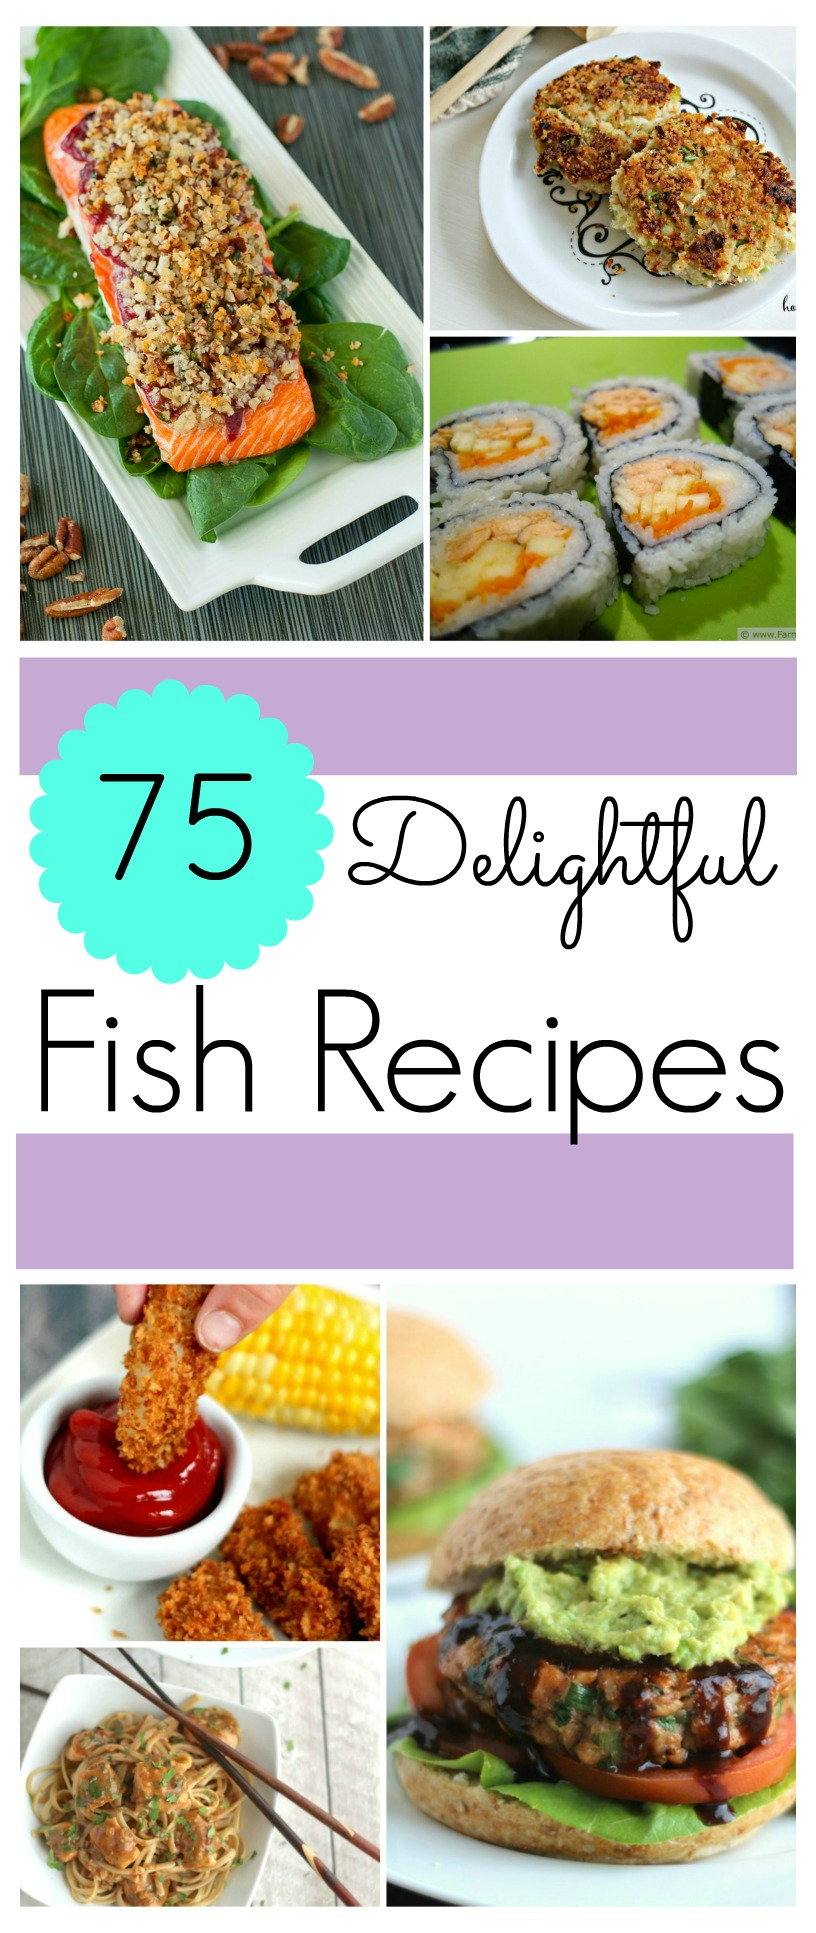 Looking for some delicious fish dishes for your family? Check out our list of 75 Delightful Fish Recipes here!